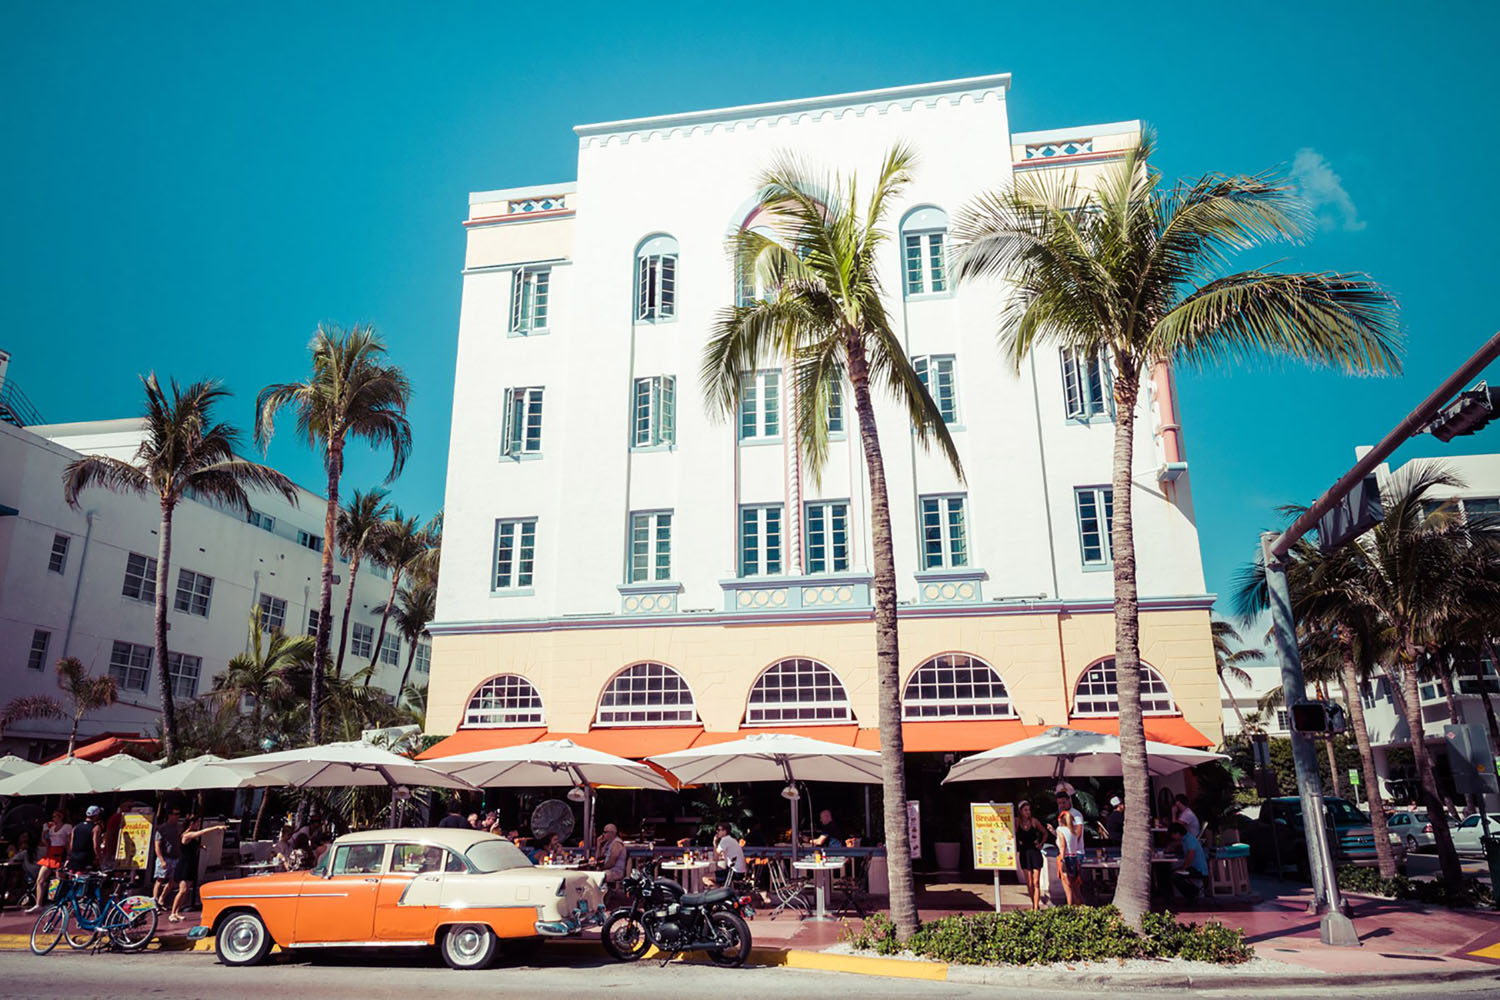 Vintage Car Parked along Ocean Drive in South Beach. Miami, Florida